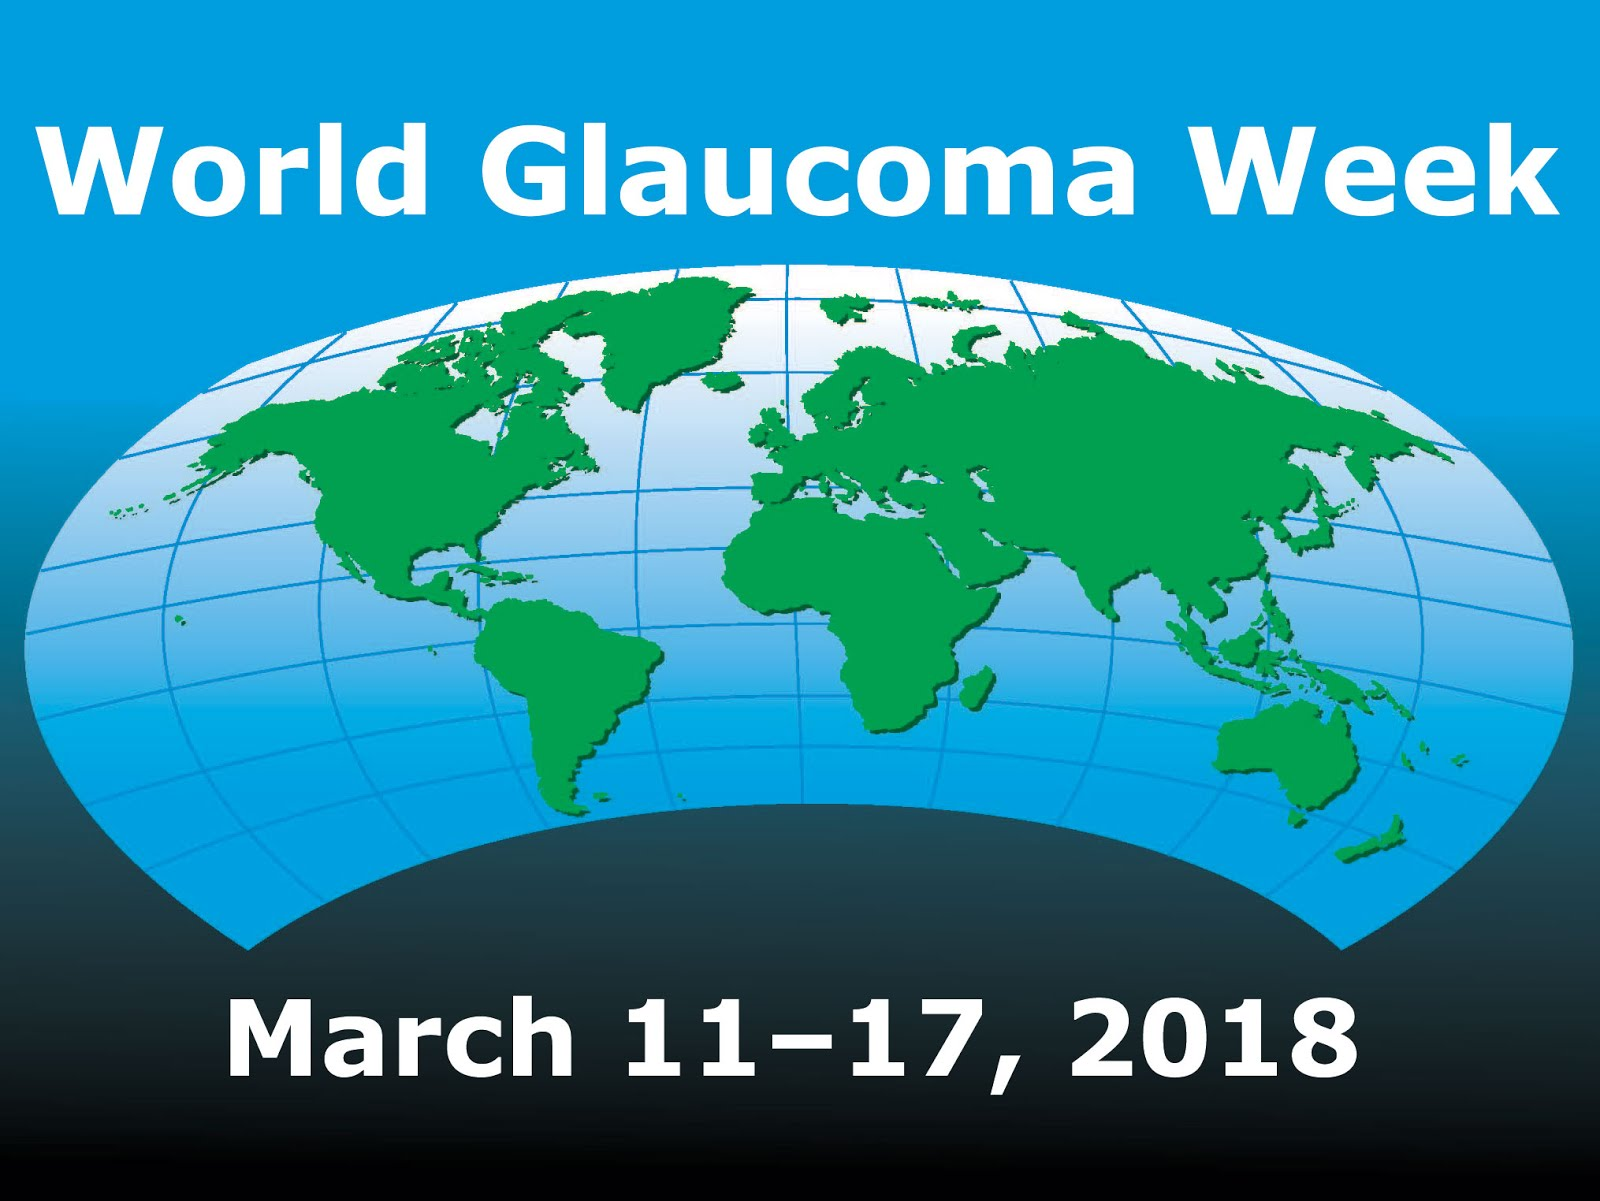 World Glaucoma Week March 11-17, 2018